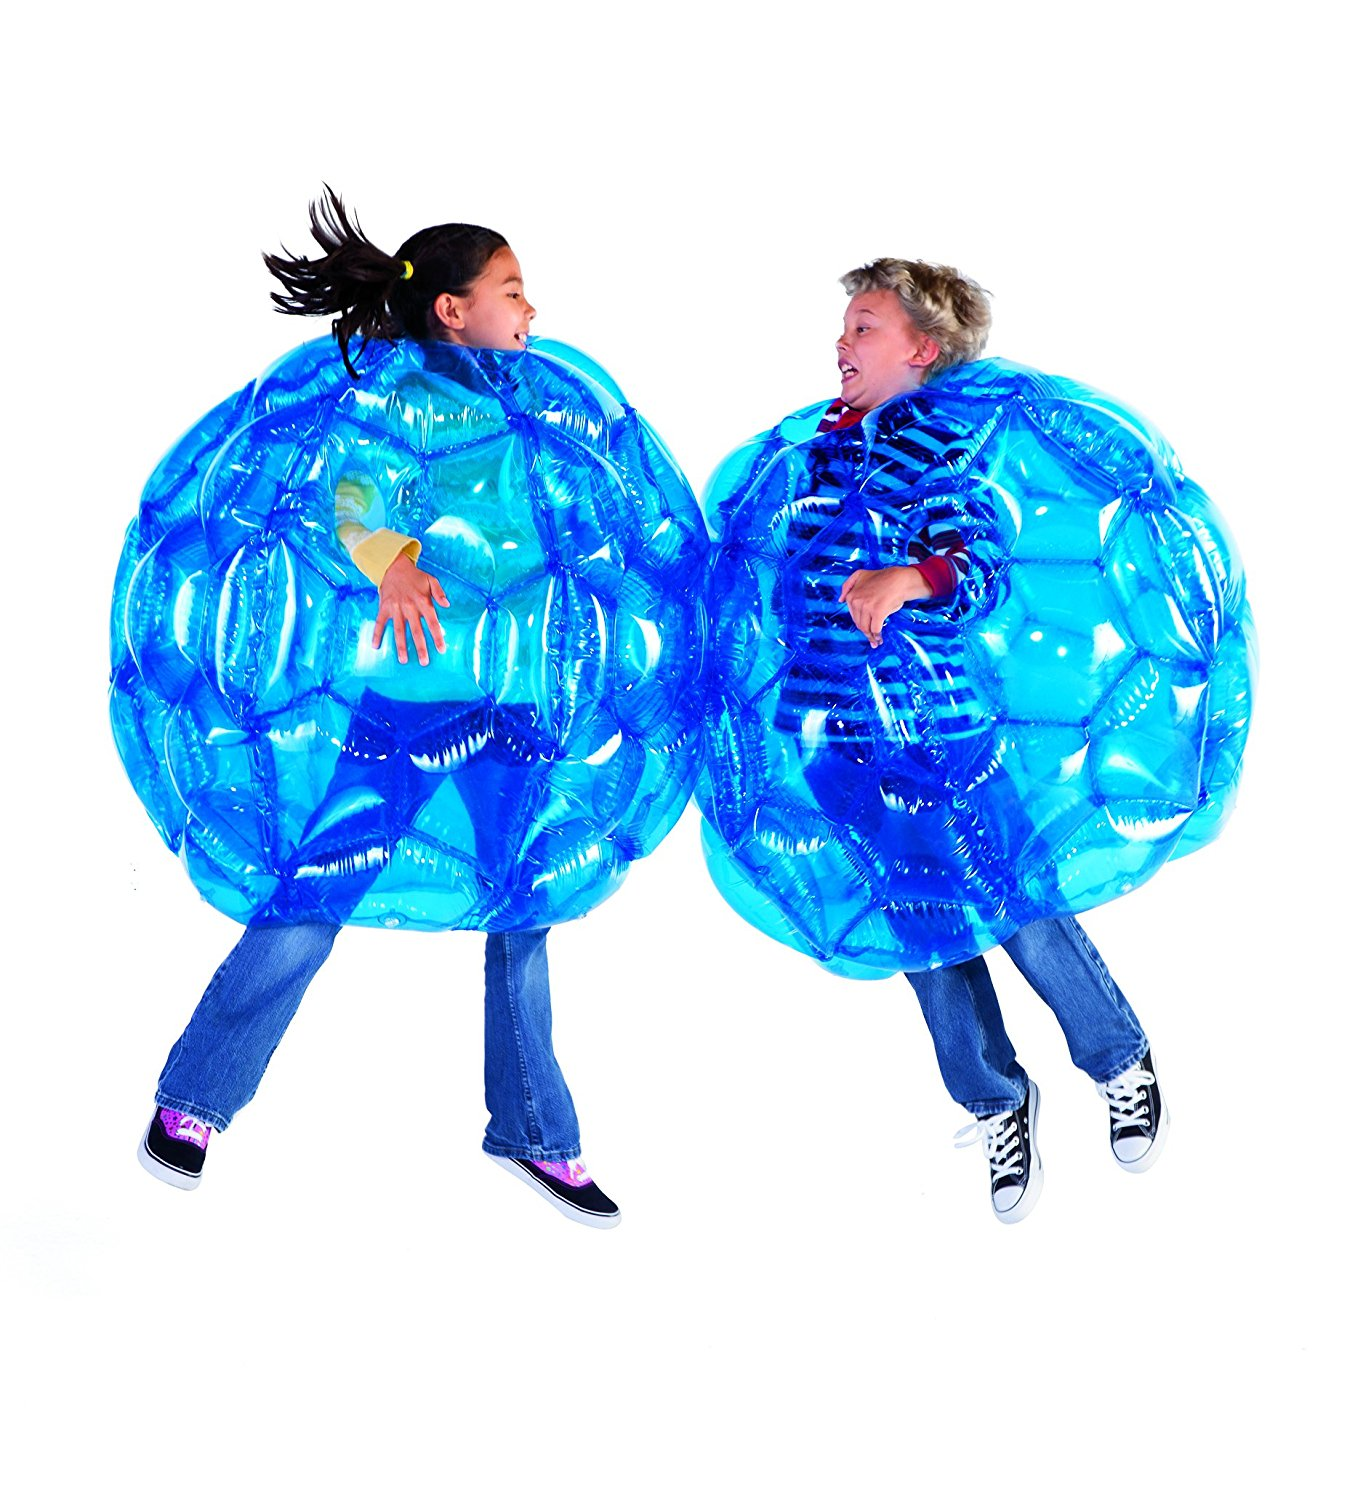 Top 10 Best Bubble Balls in 2018 Reviews